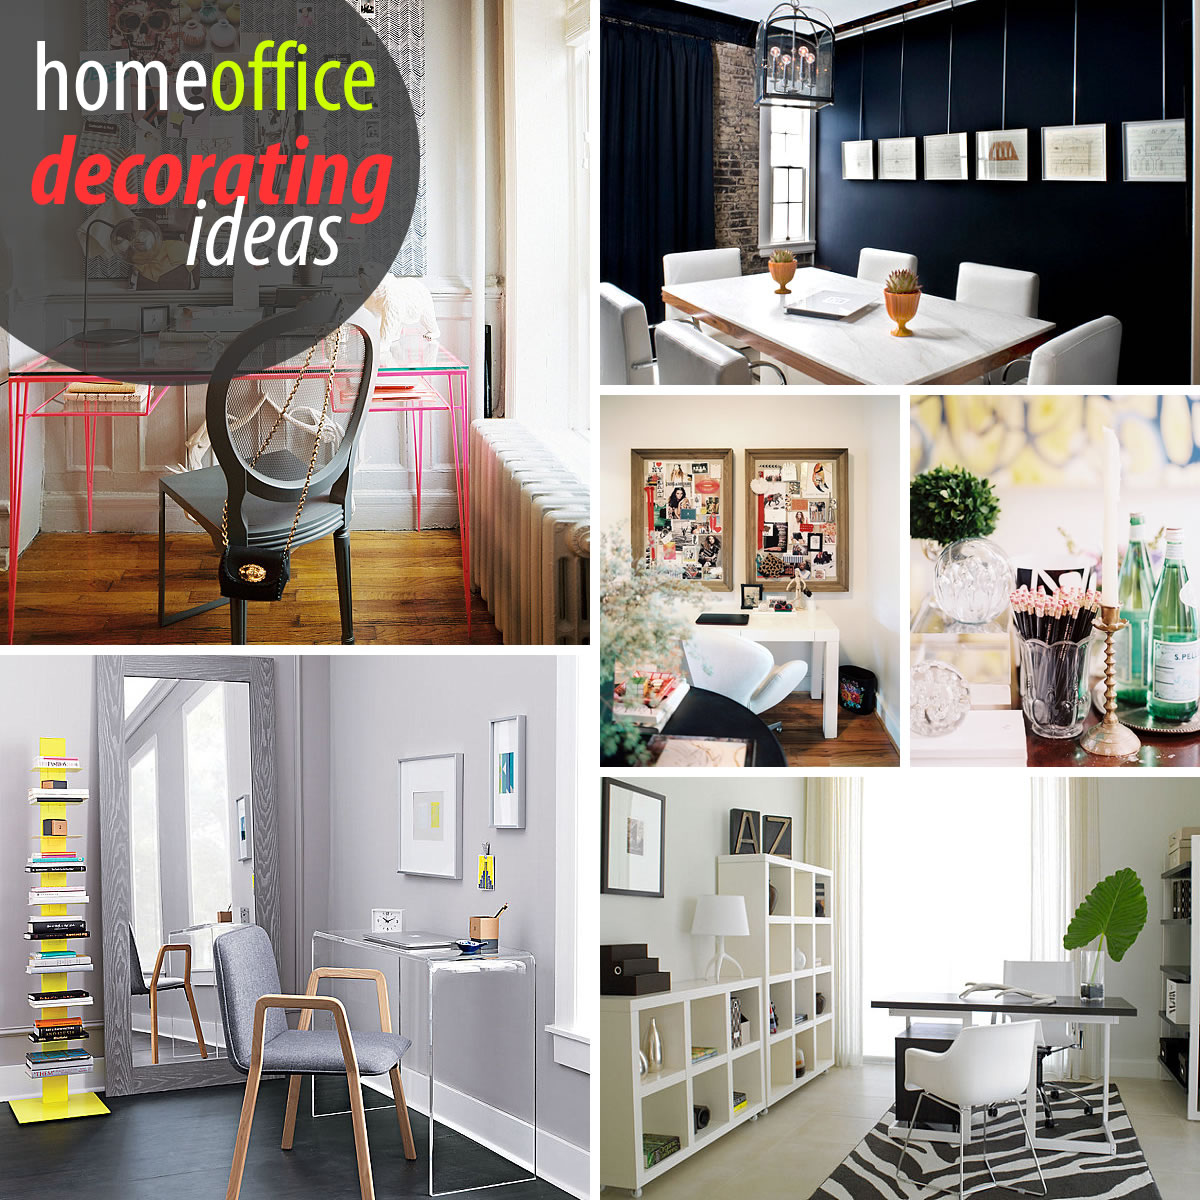 Creative home office ideas bill house plans - Home office designs ideas ...